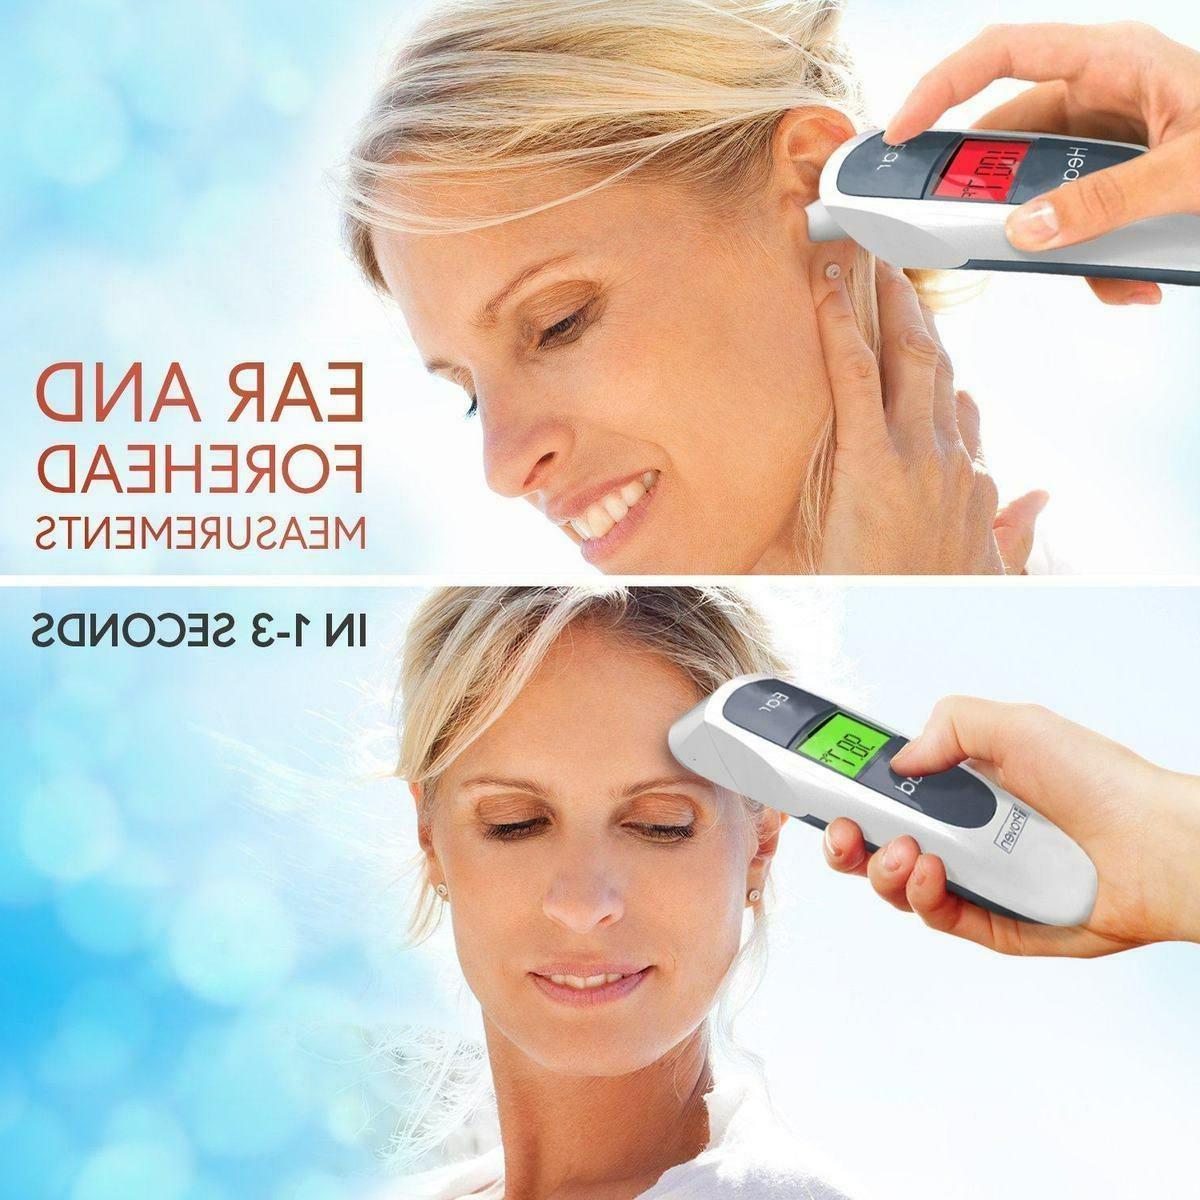 New Adult Ear Thermometer with Accuracy- DMT-316B